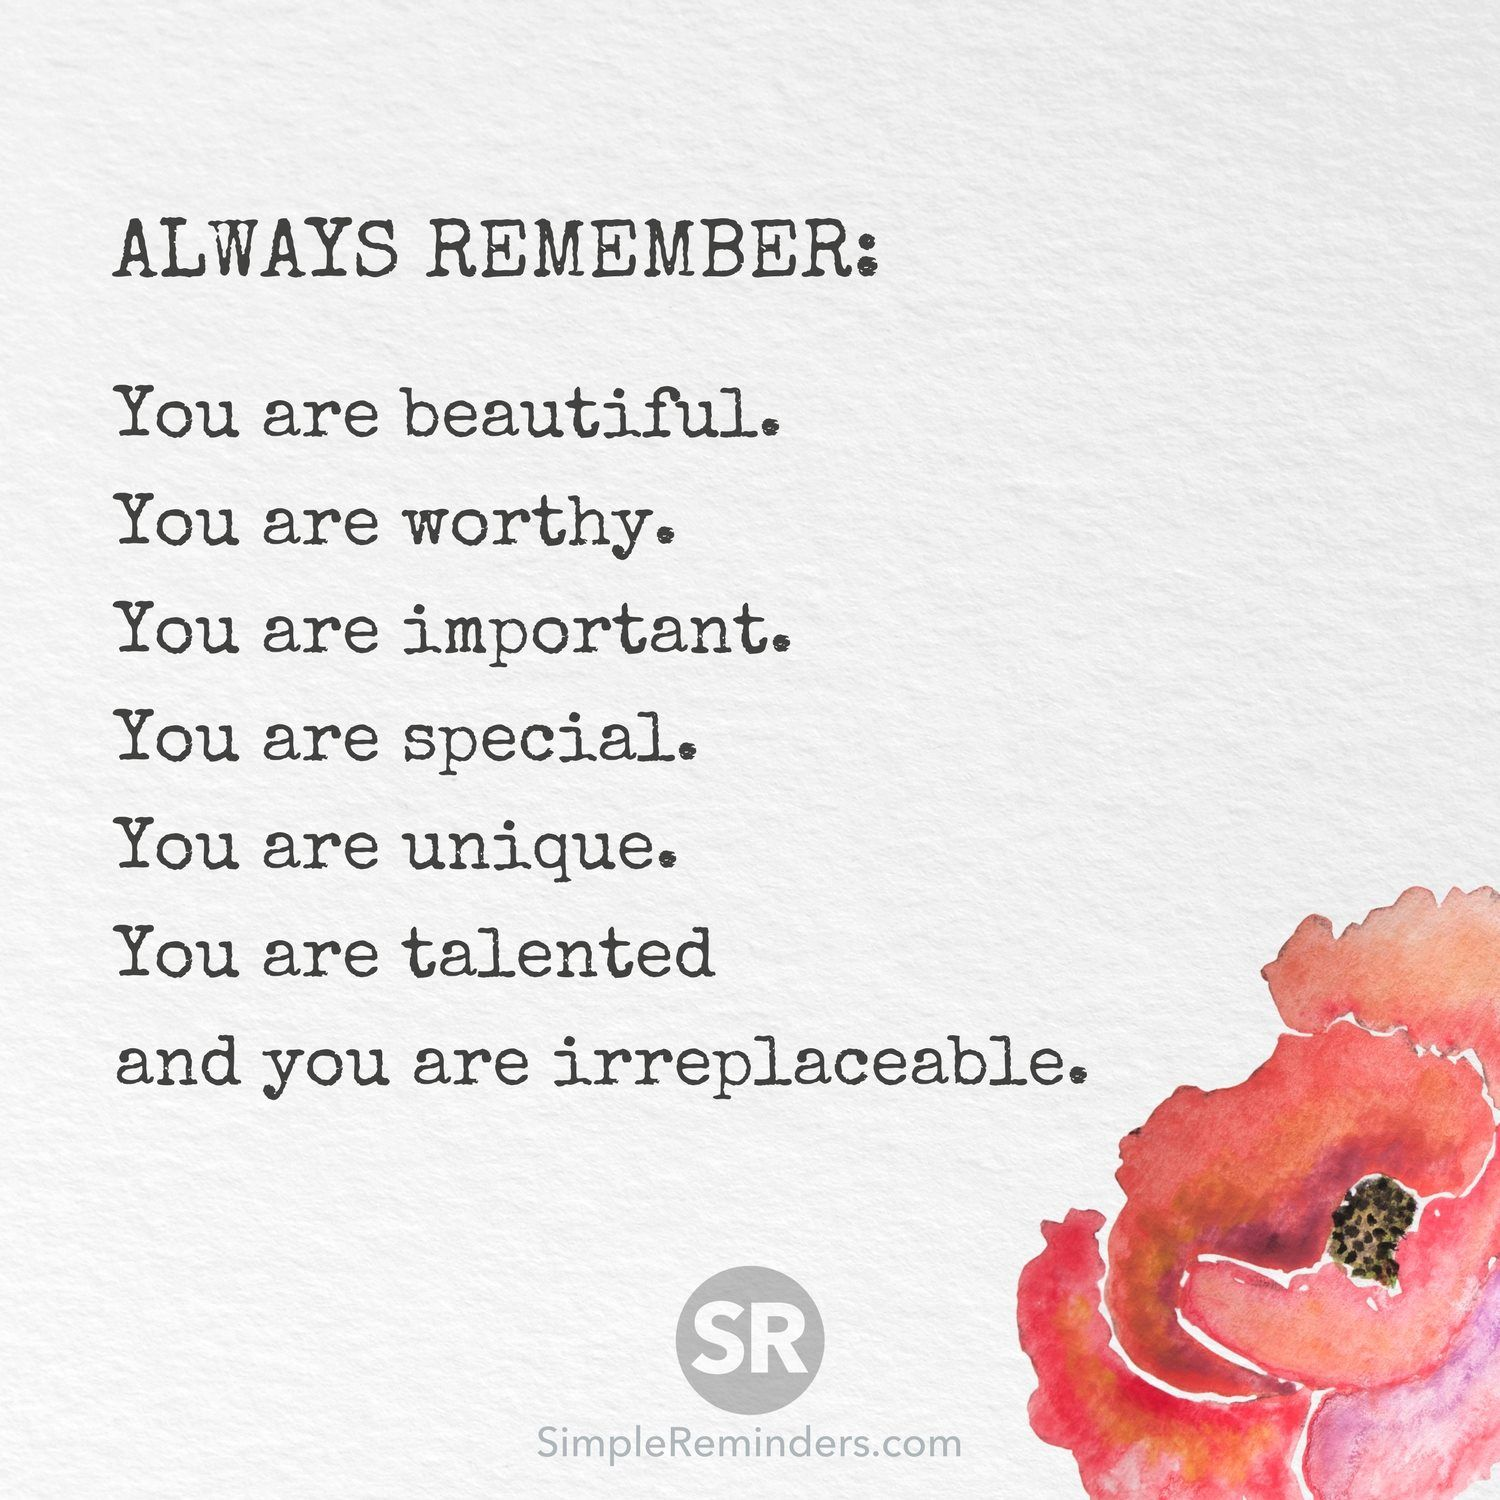 Quotes You Are Beautiful: Always Remember: You Are Beautiful. You Are Worthy. You